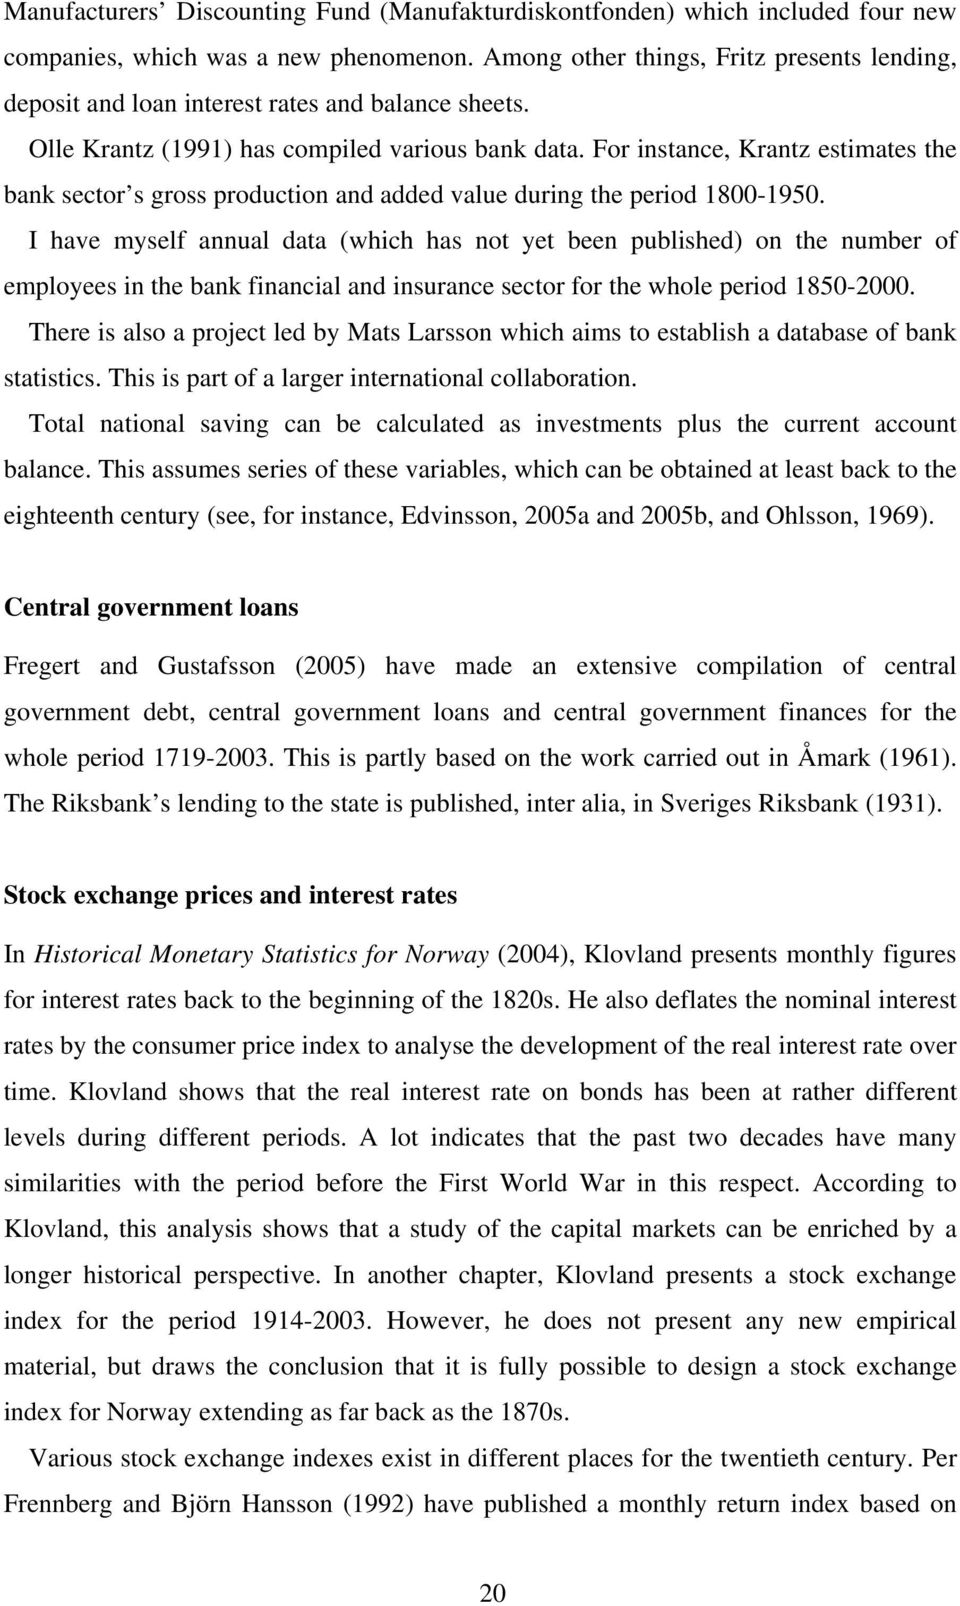 For instance, Krantz estimates the bank sector s gross production and added value during the period 1800-1950.